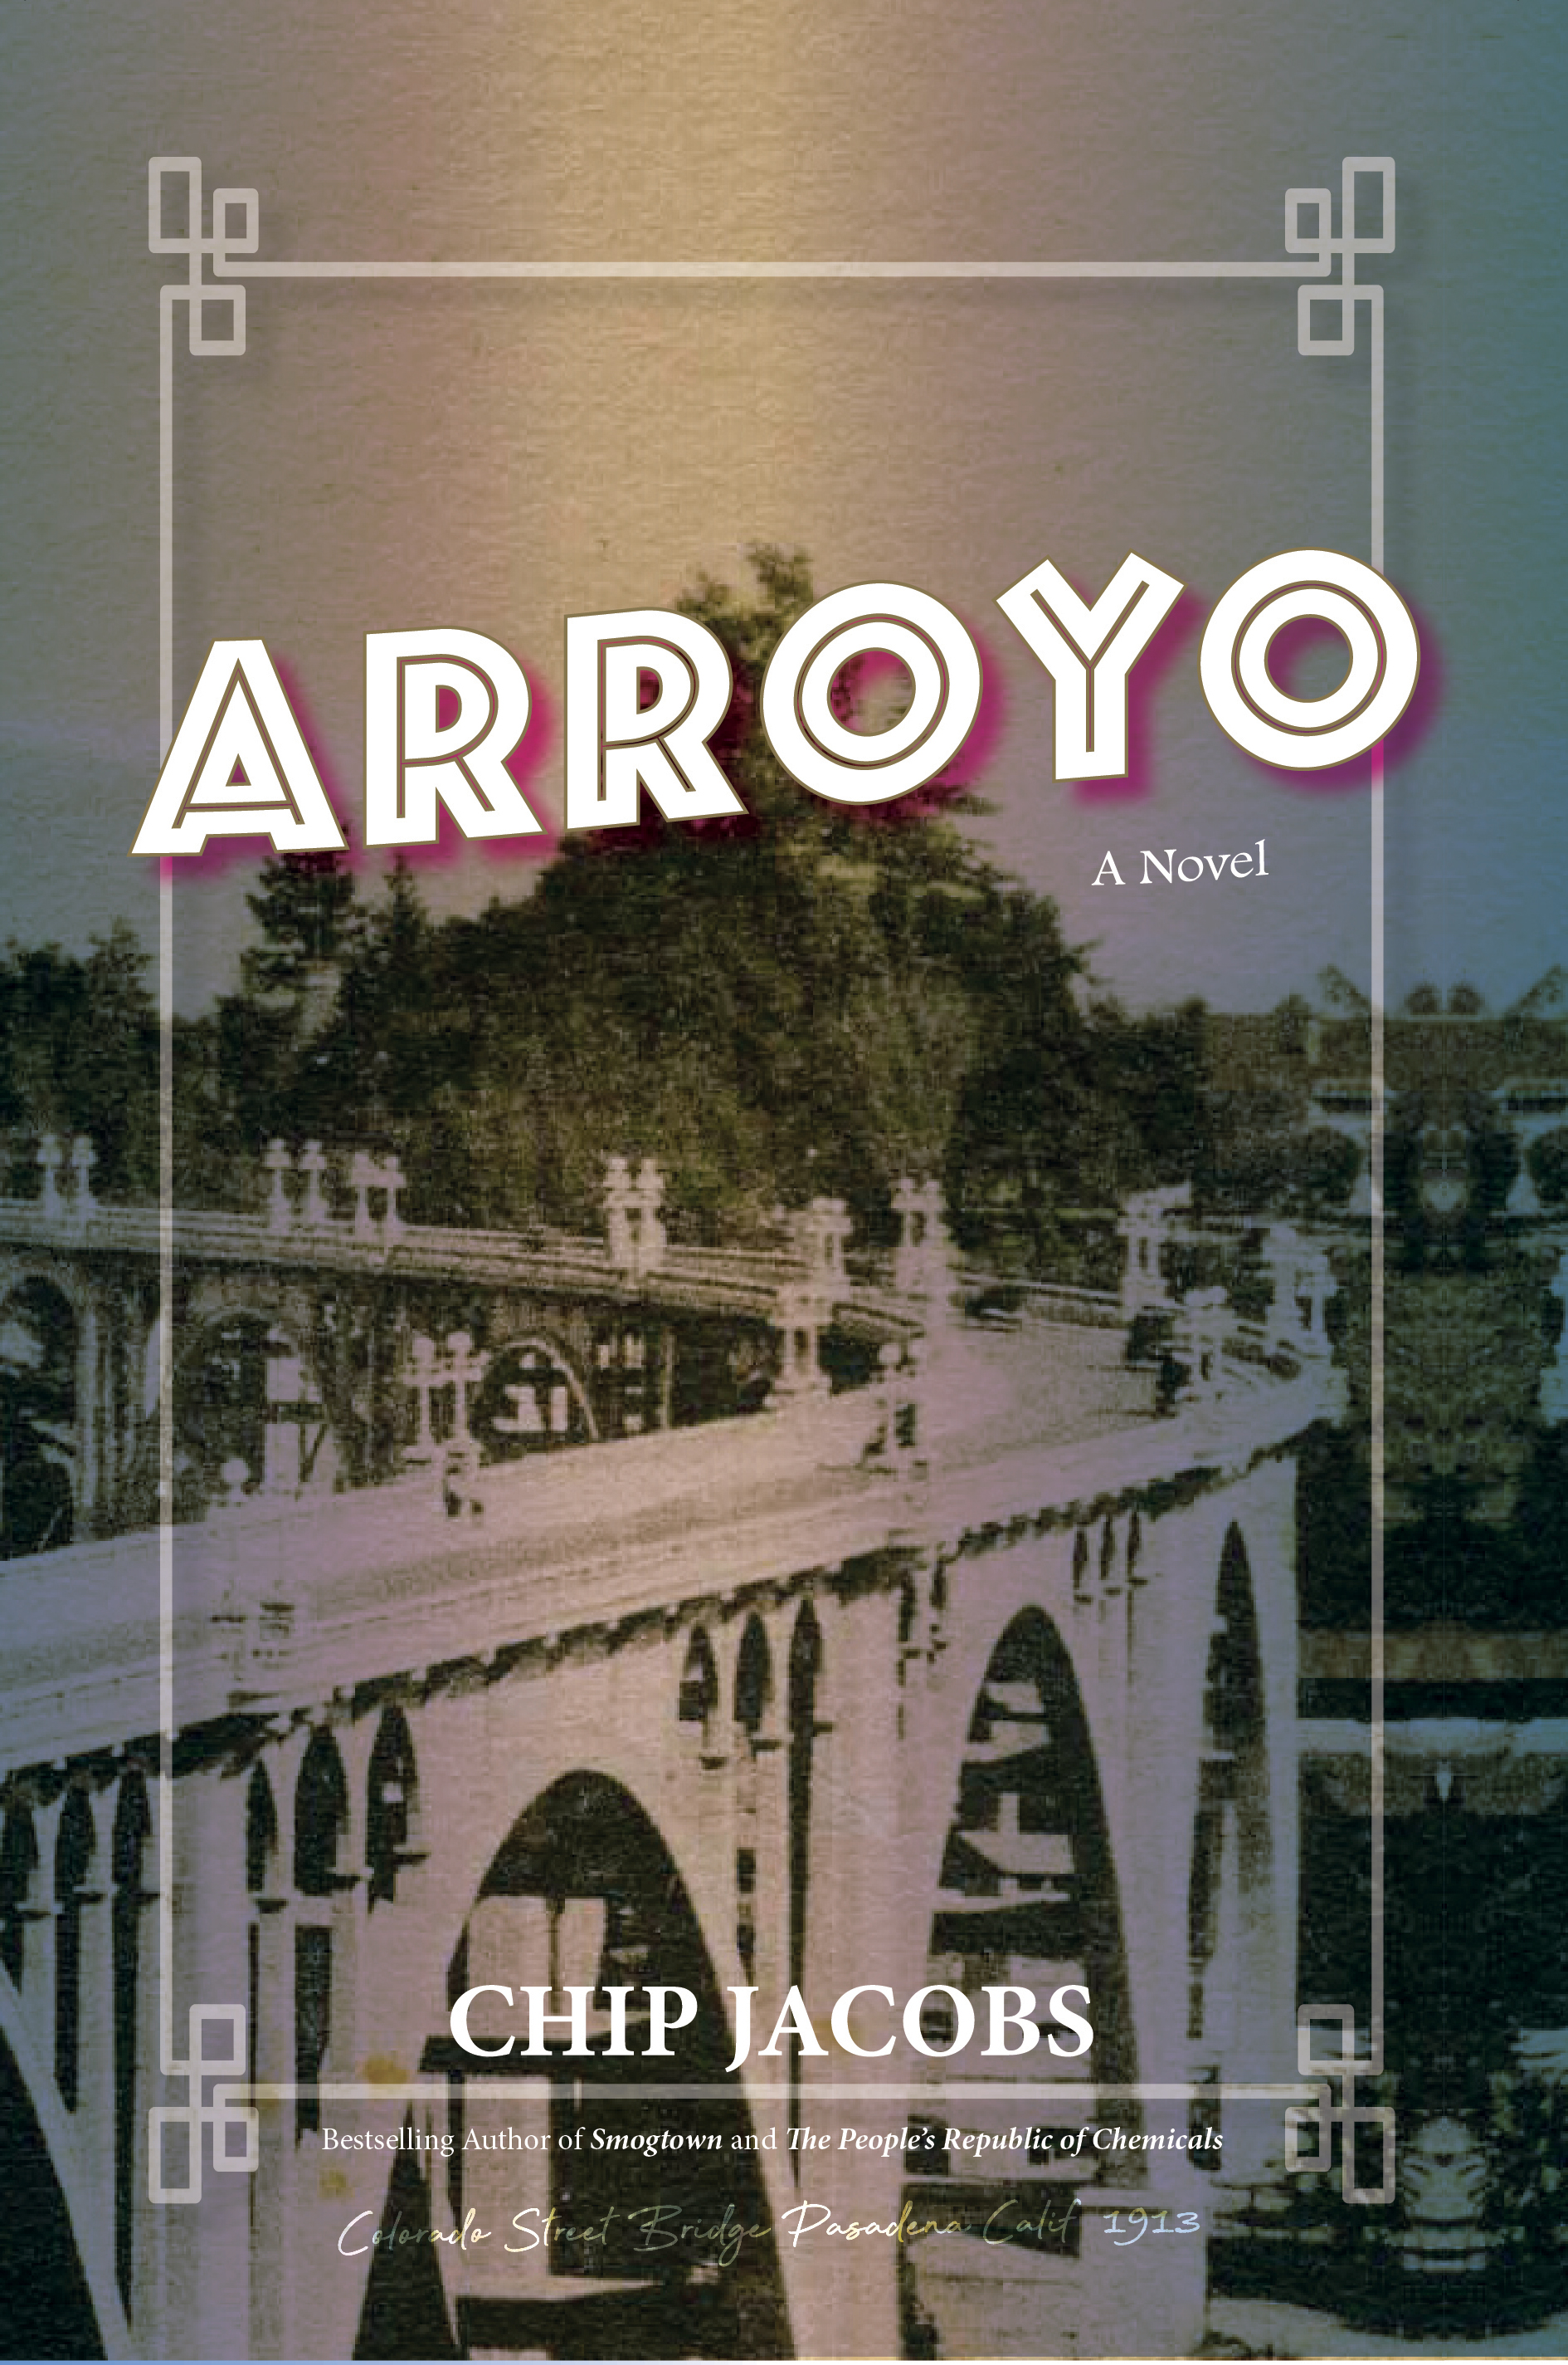 Arroyo book cover with large bridge